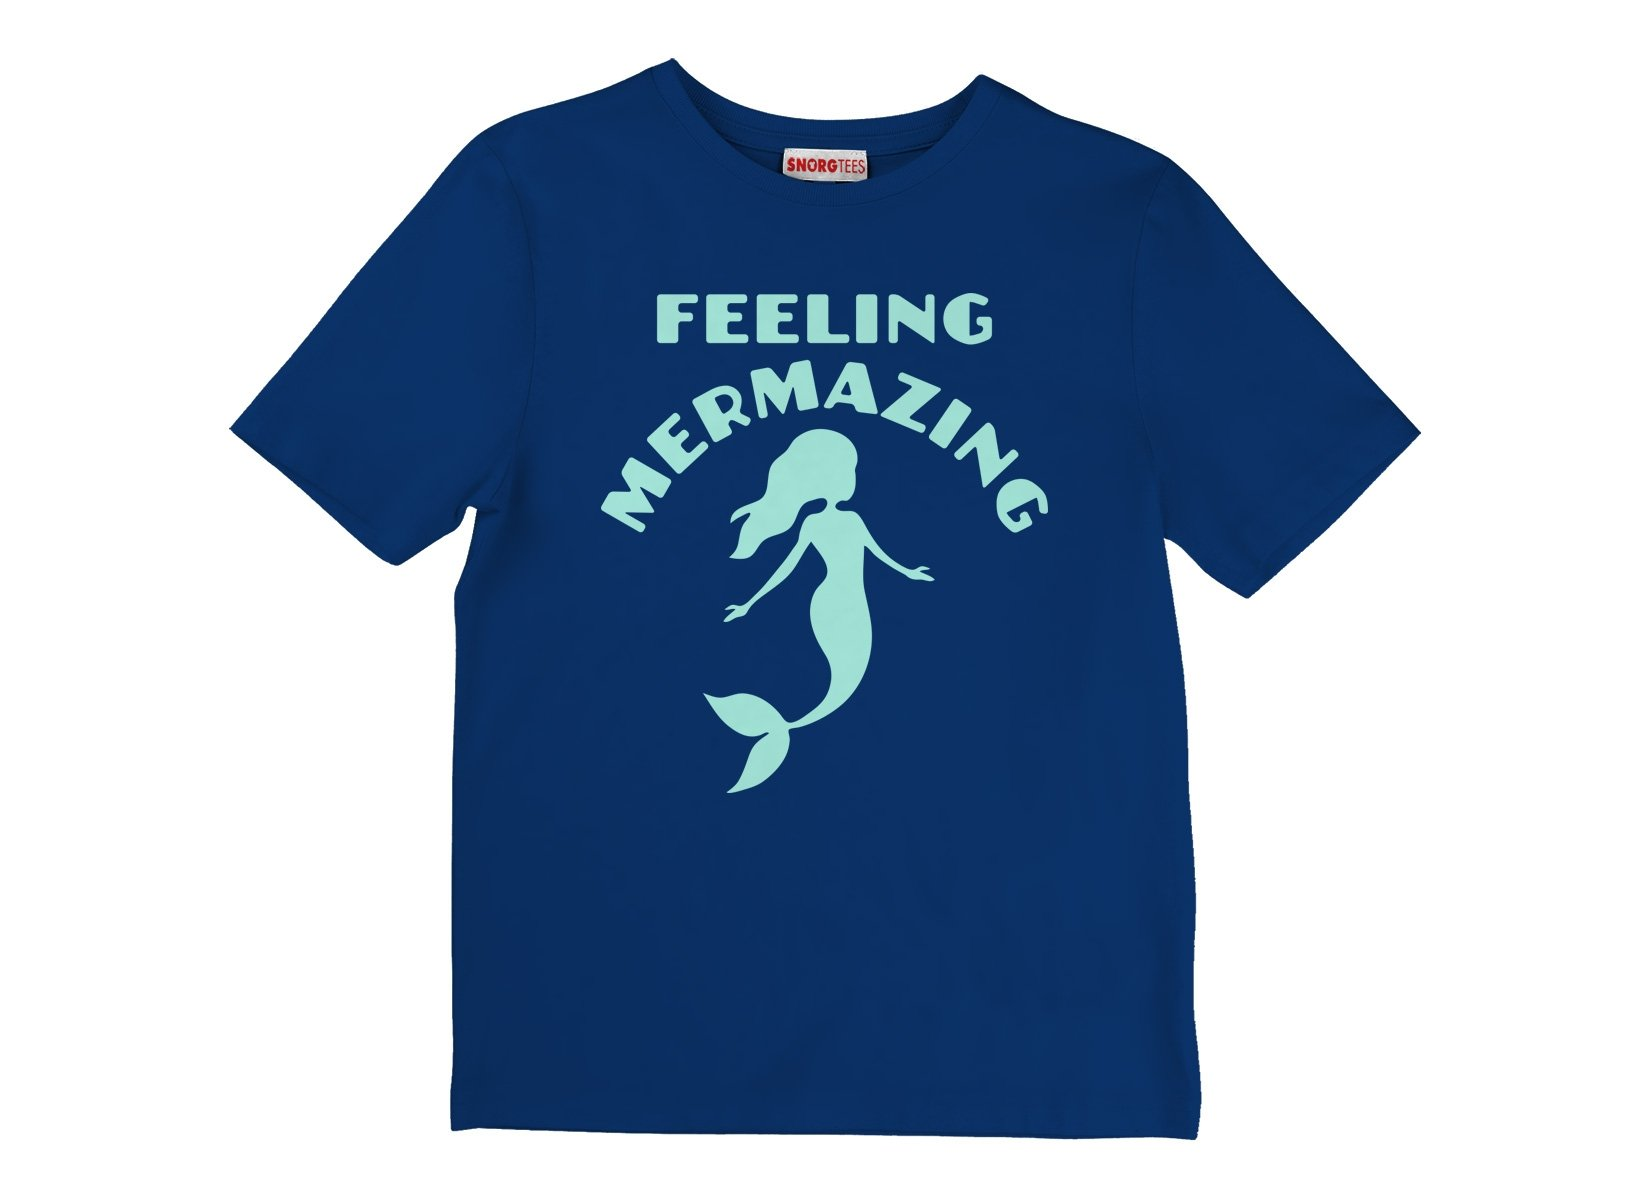 Feeling Mermazing on Kids T-Shirt